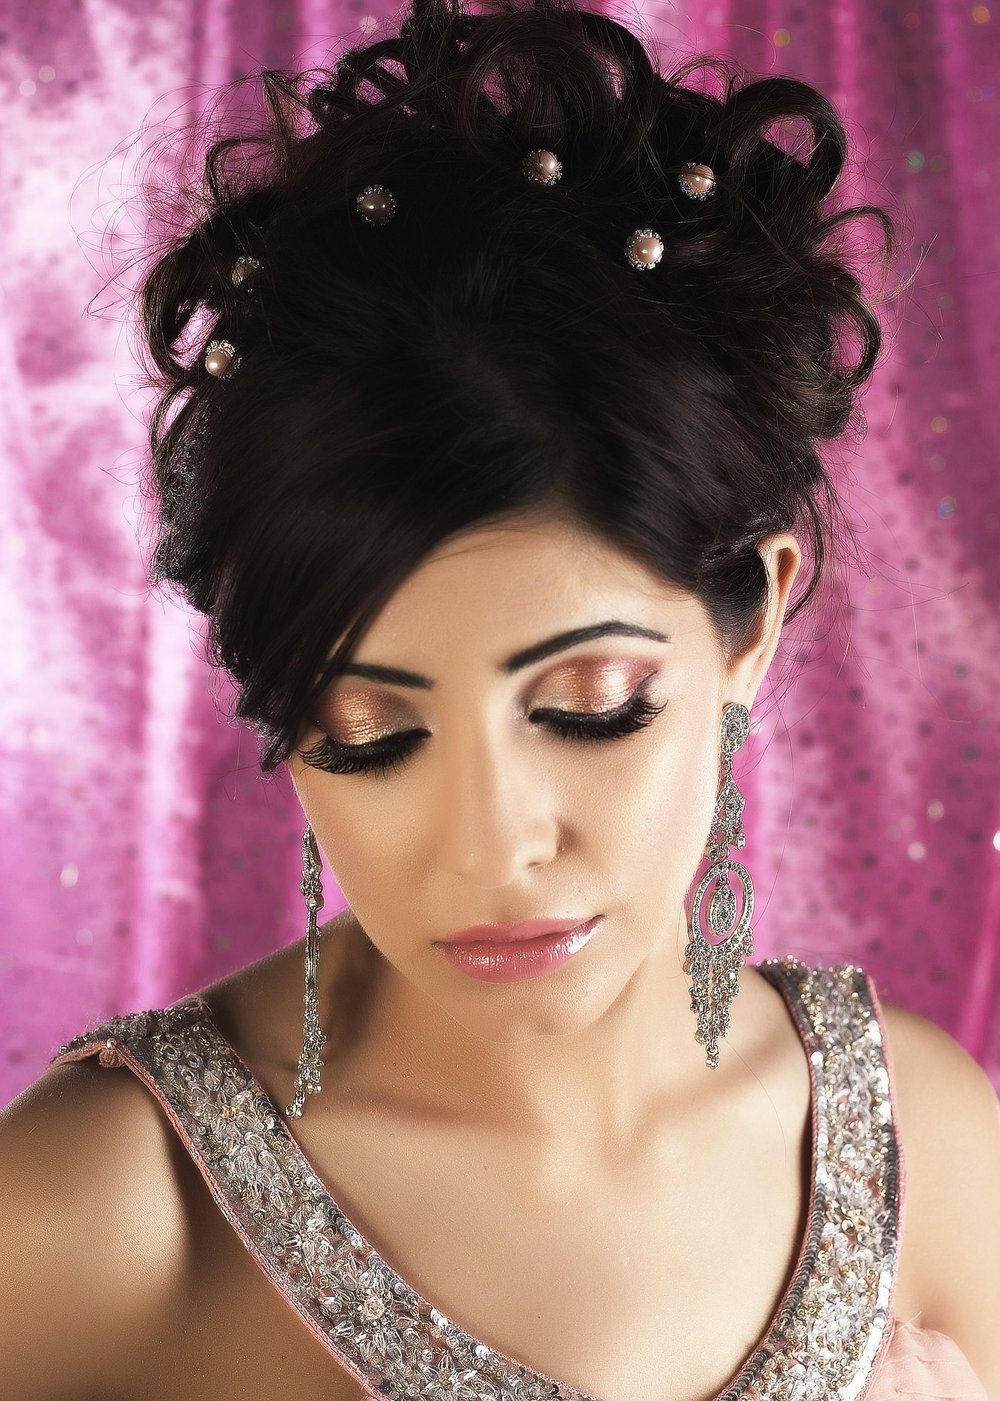 2 DAY - BASIC TO ADVANCED BRIDAL HAIR STYLING: - Summary:- 10 different hair styles- Traditional & Modern- Party, Registry, Bridal- Hair Extensions- Front/Back Styling- Half Up/Half Down- Vintage Styles- Bridal Buns/Low Buns- Curls and Waves- AccessoriesFEES: £650